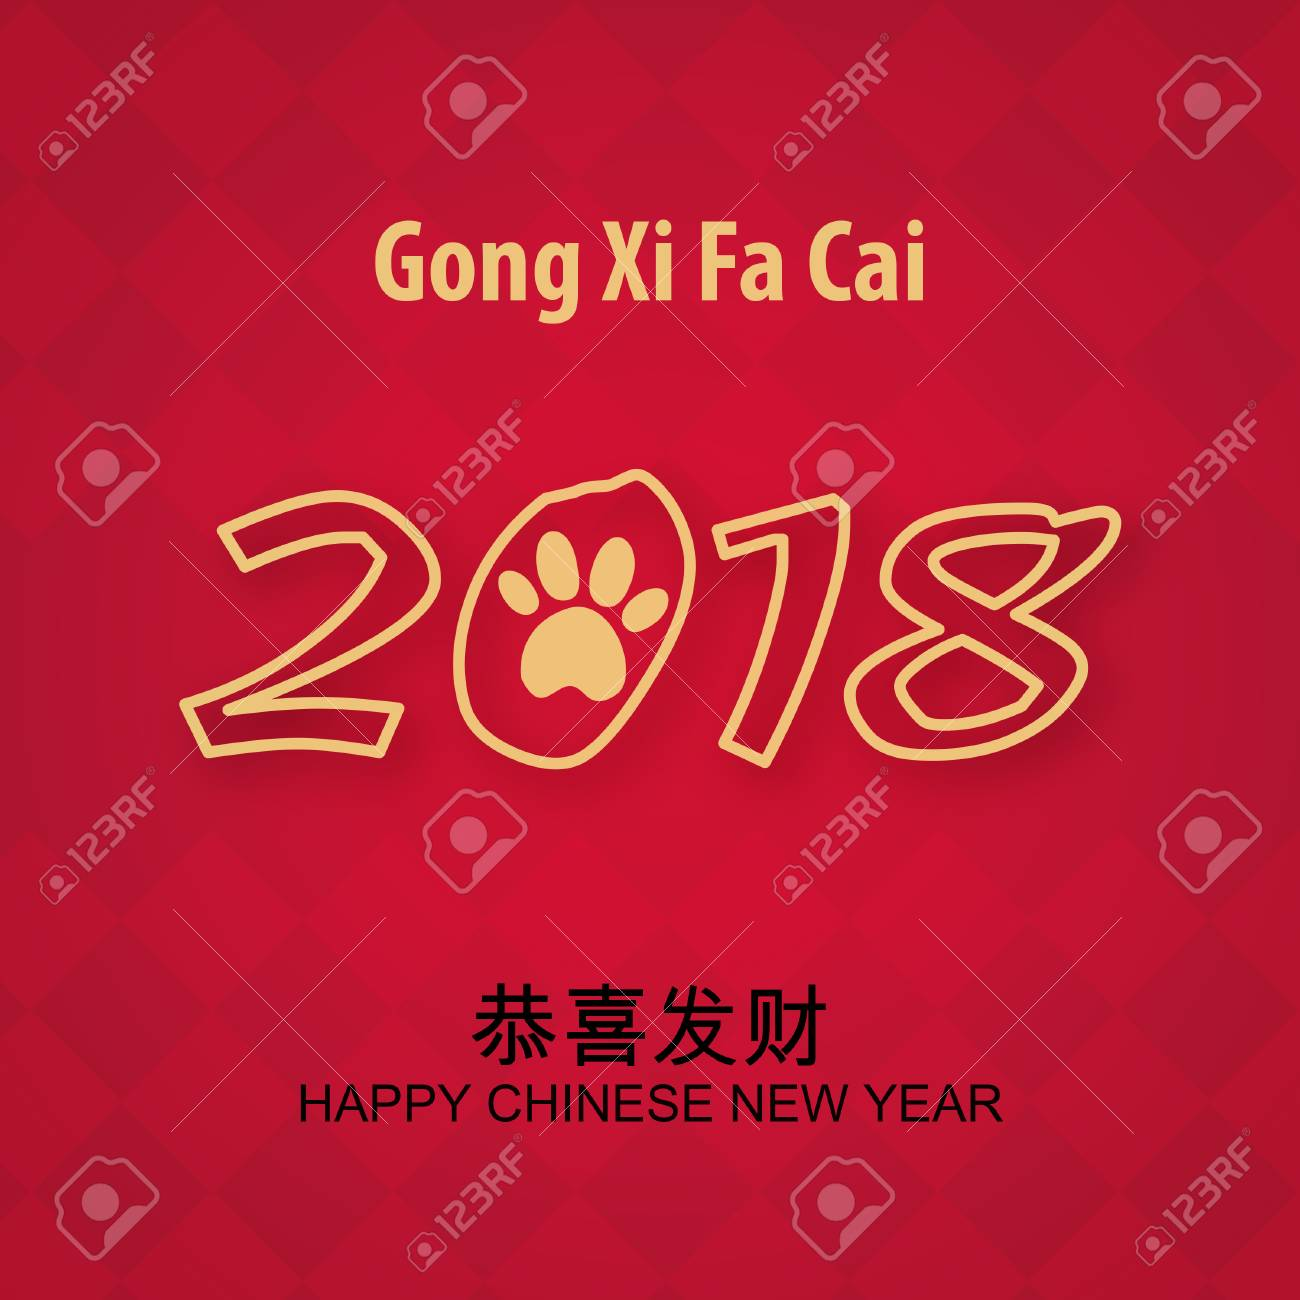 Chinese New Year Greeting Card Design Chinese Translation Gong